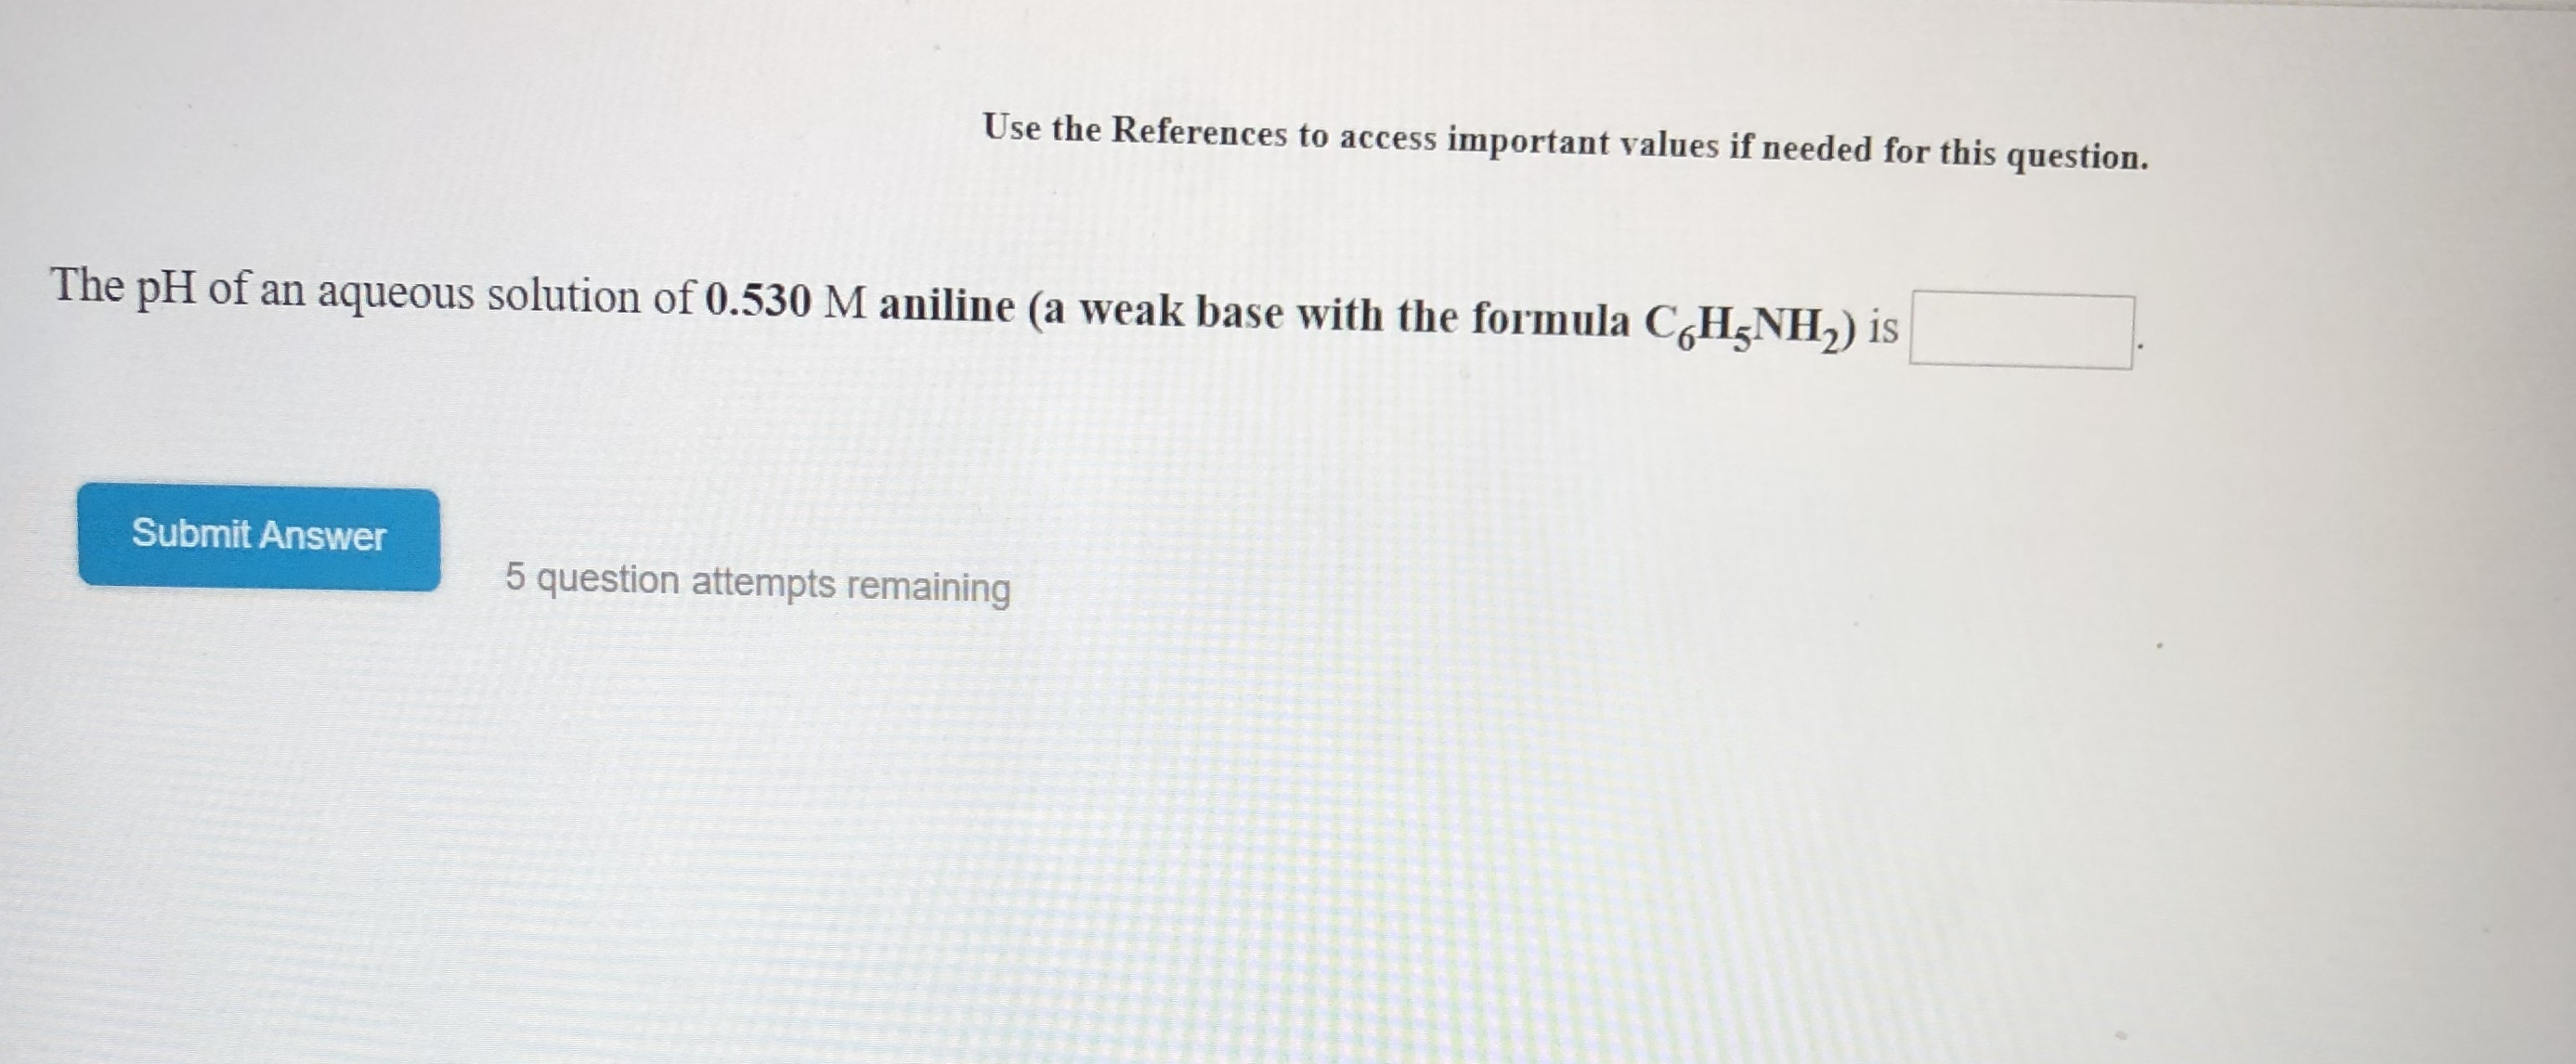 Use the References to access important values if needed for this question. The pH of an aqueous solution of 0.530 M aniline (a weak base with the formula CHNH2) is Submit Answer 5 question attempts remaining